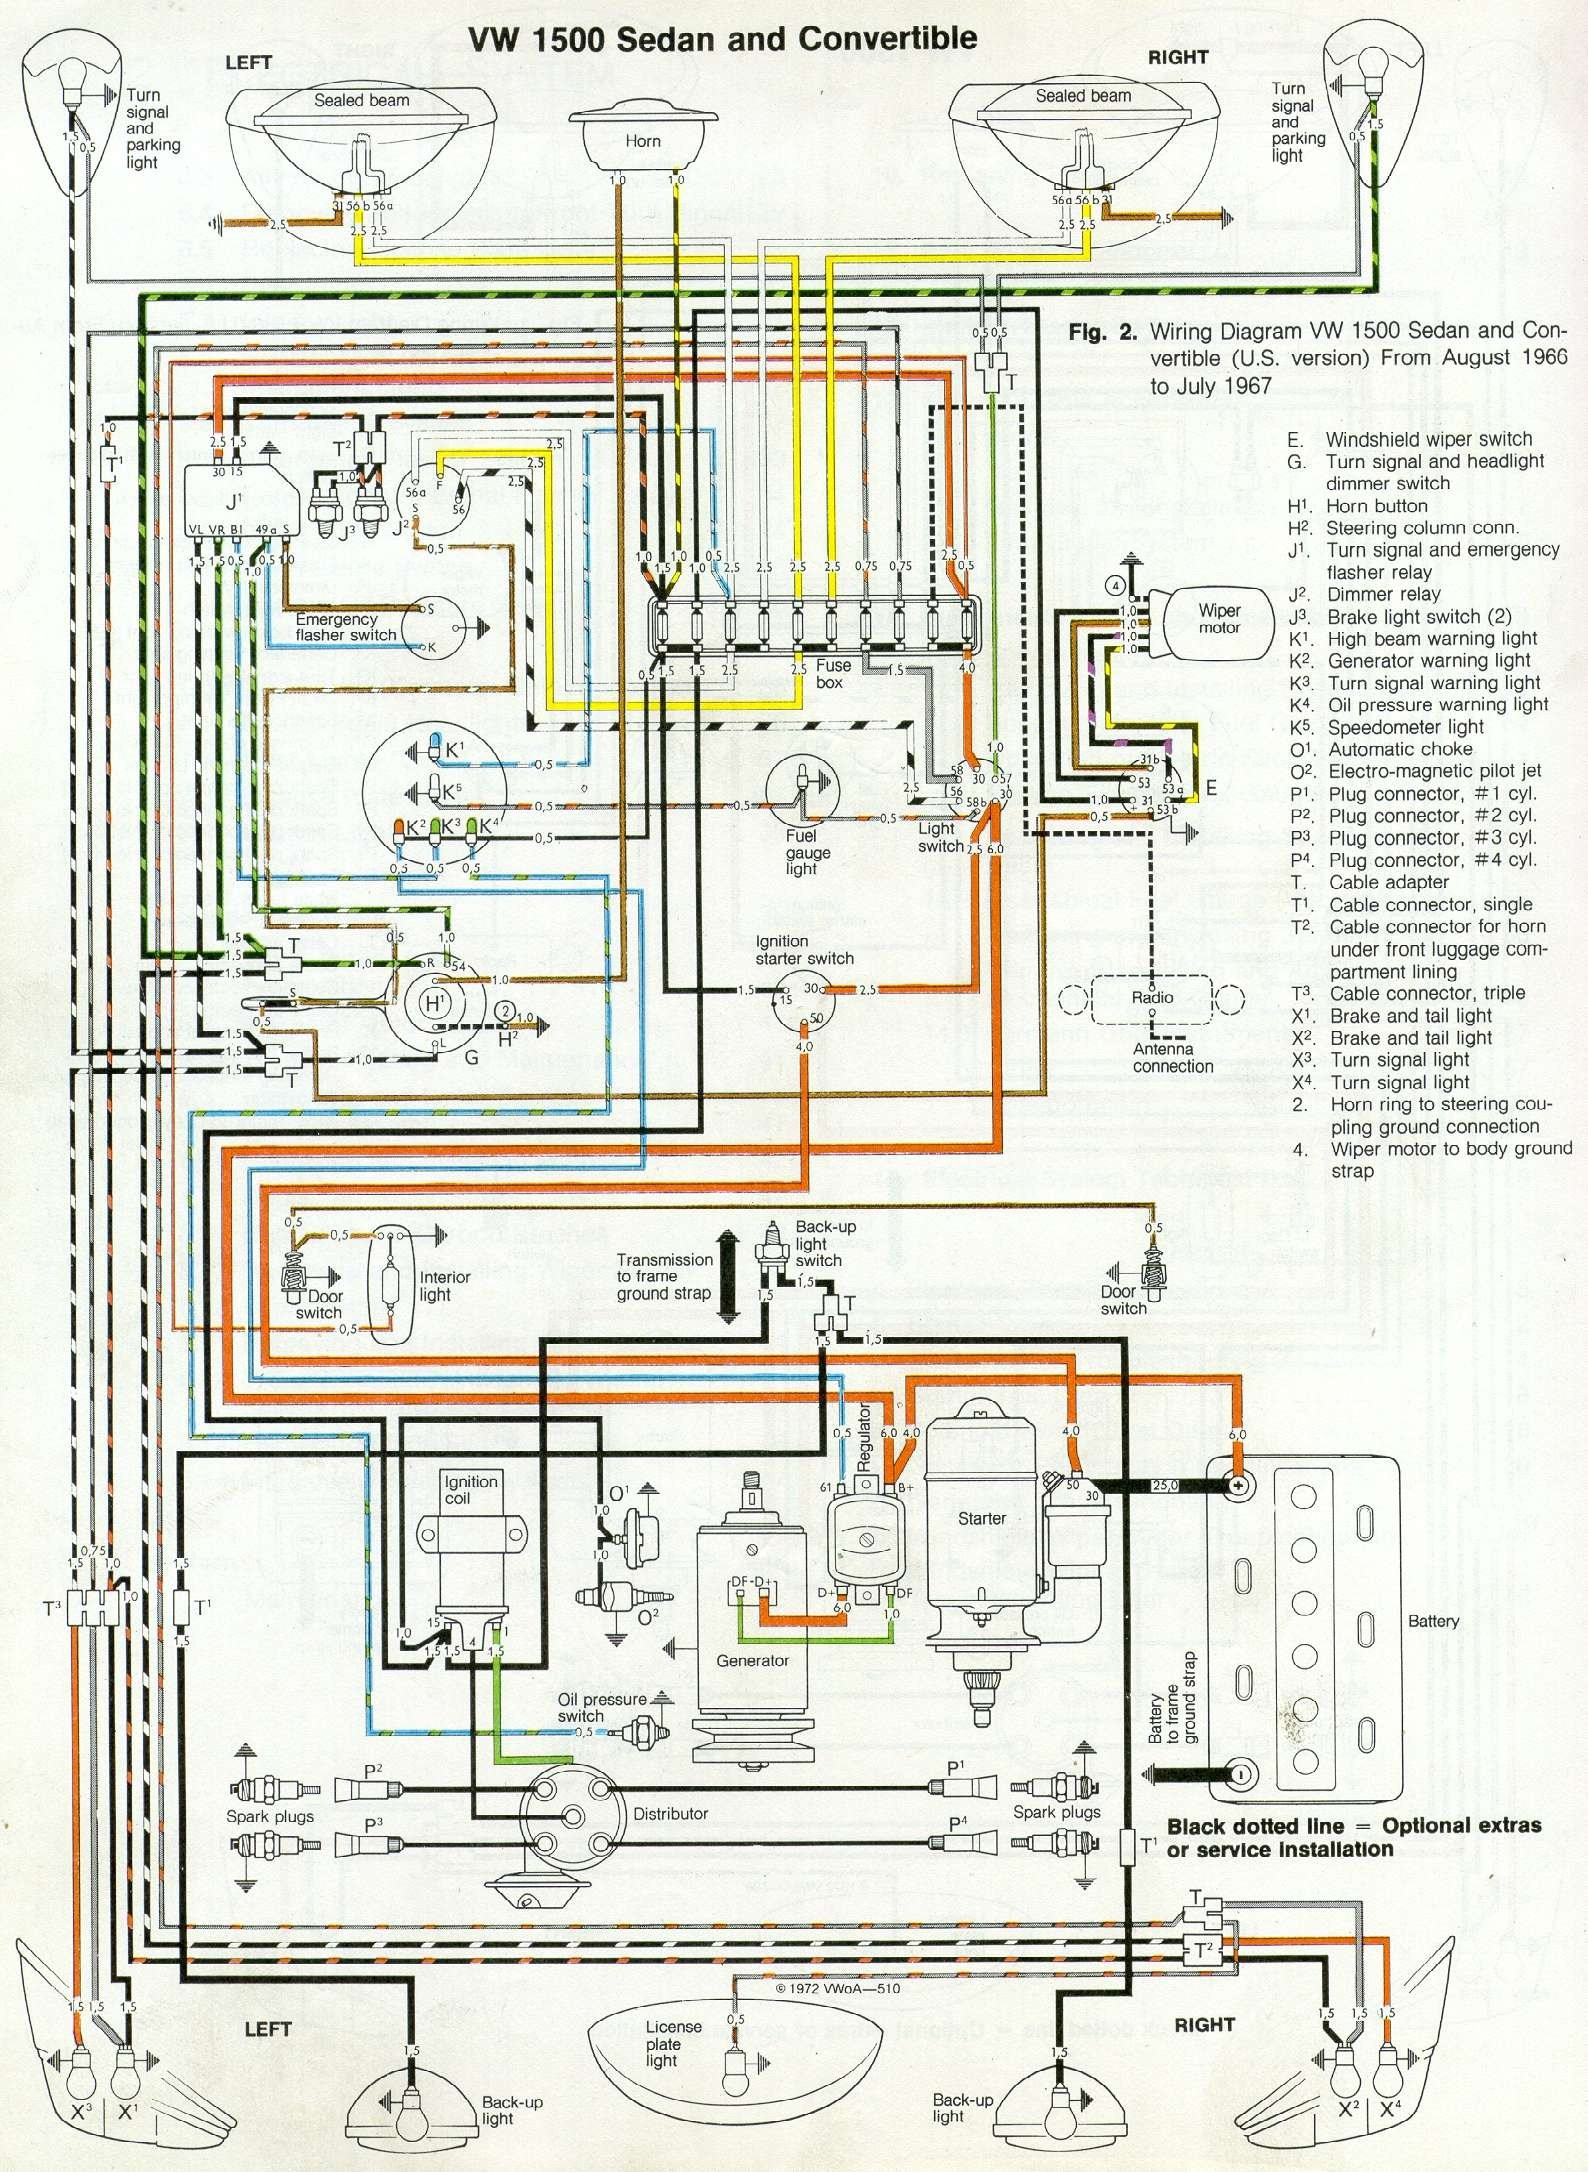 VW Beetle Wiring Digram 67 beetle wiring diagram u s version 1967 vw beetle vw wiring diagrams at readyjetset.co